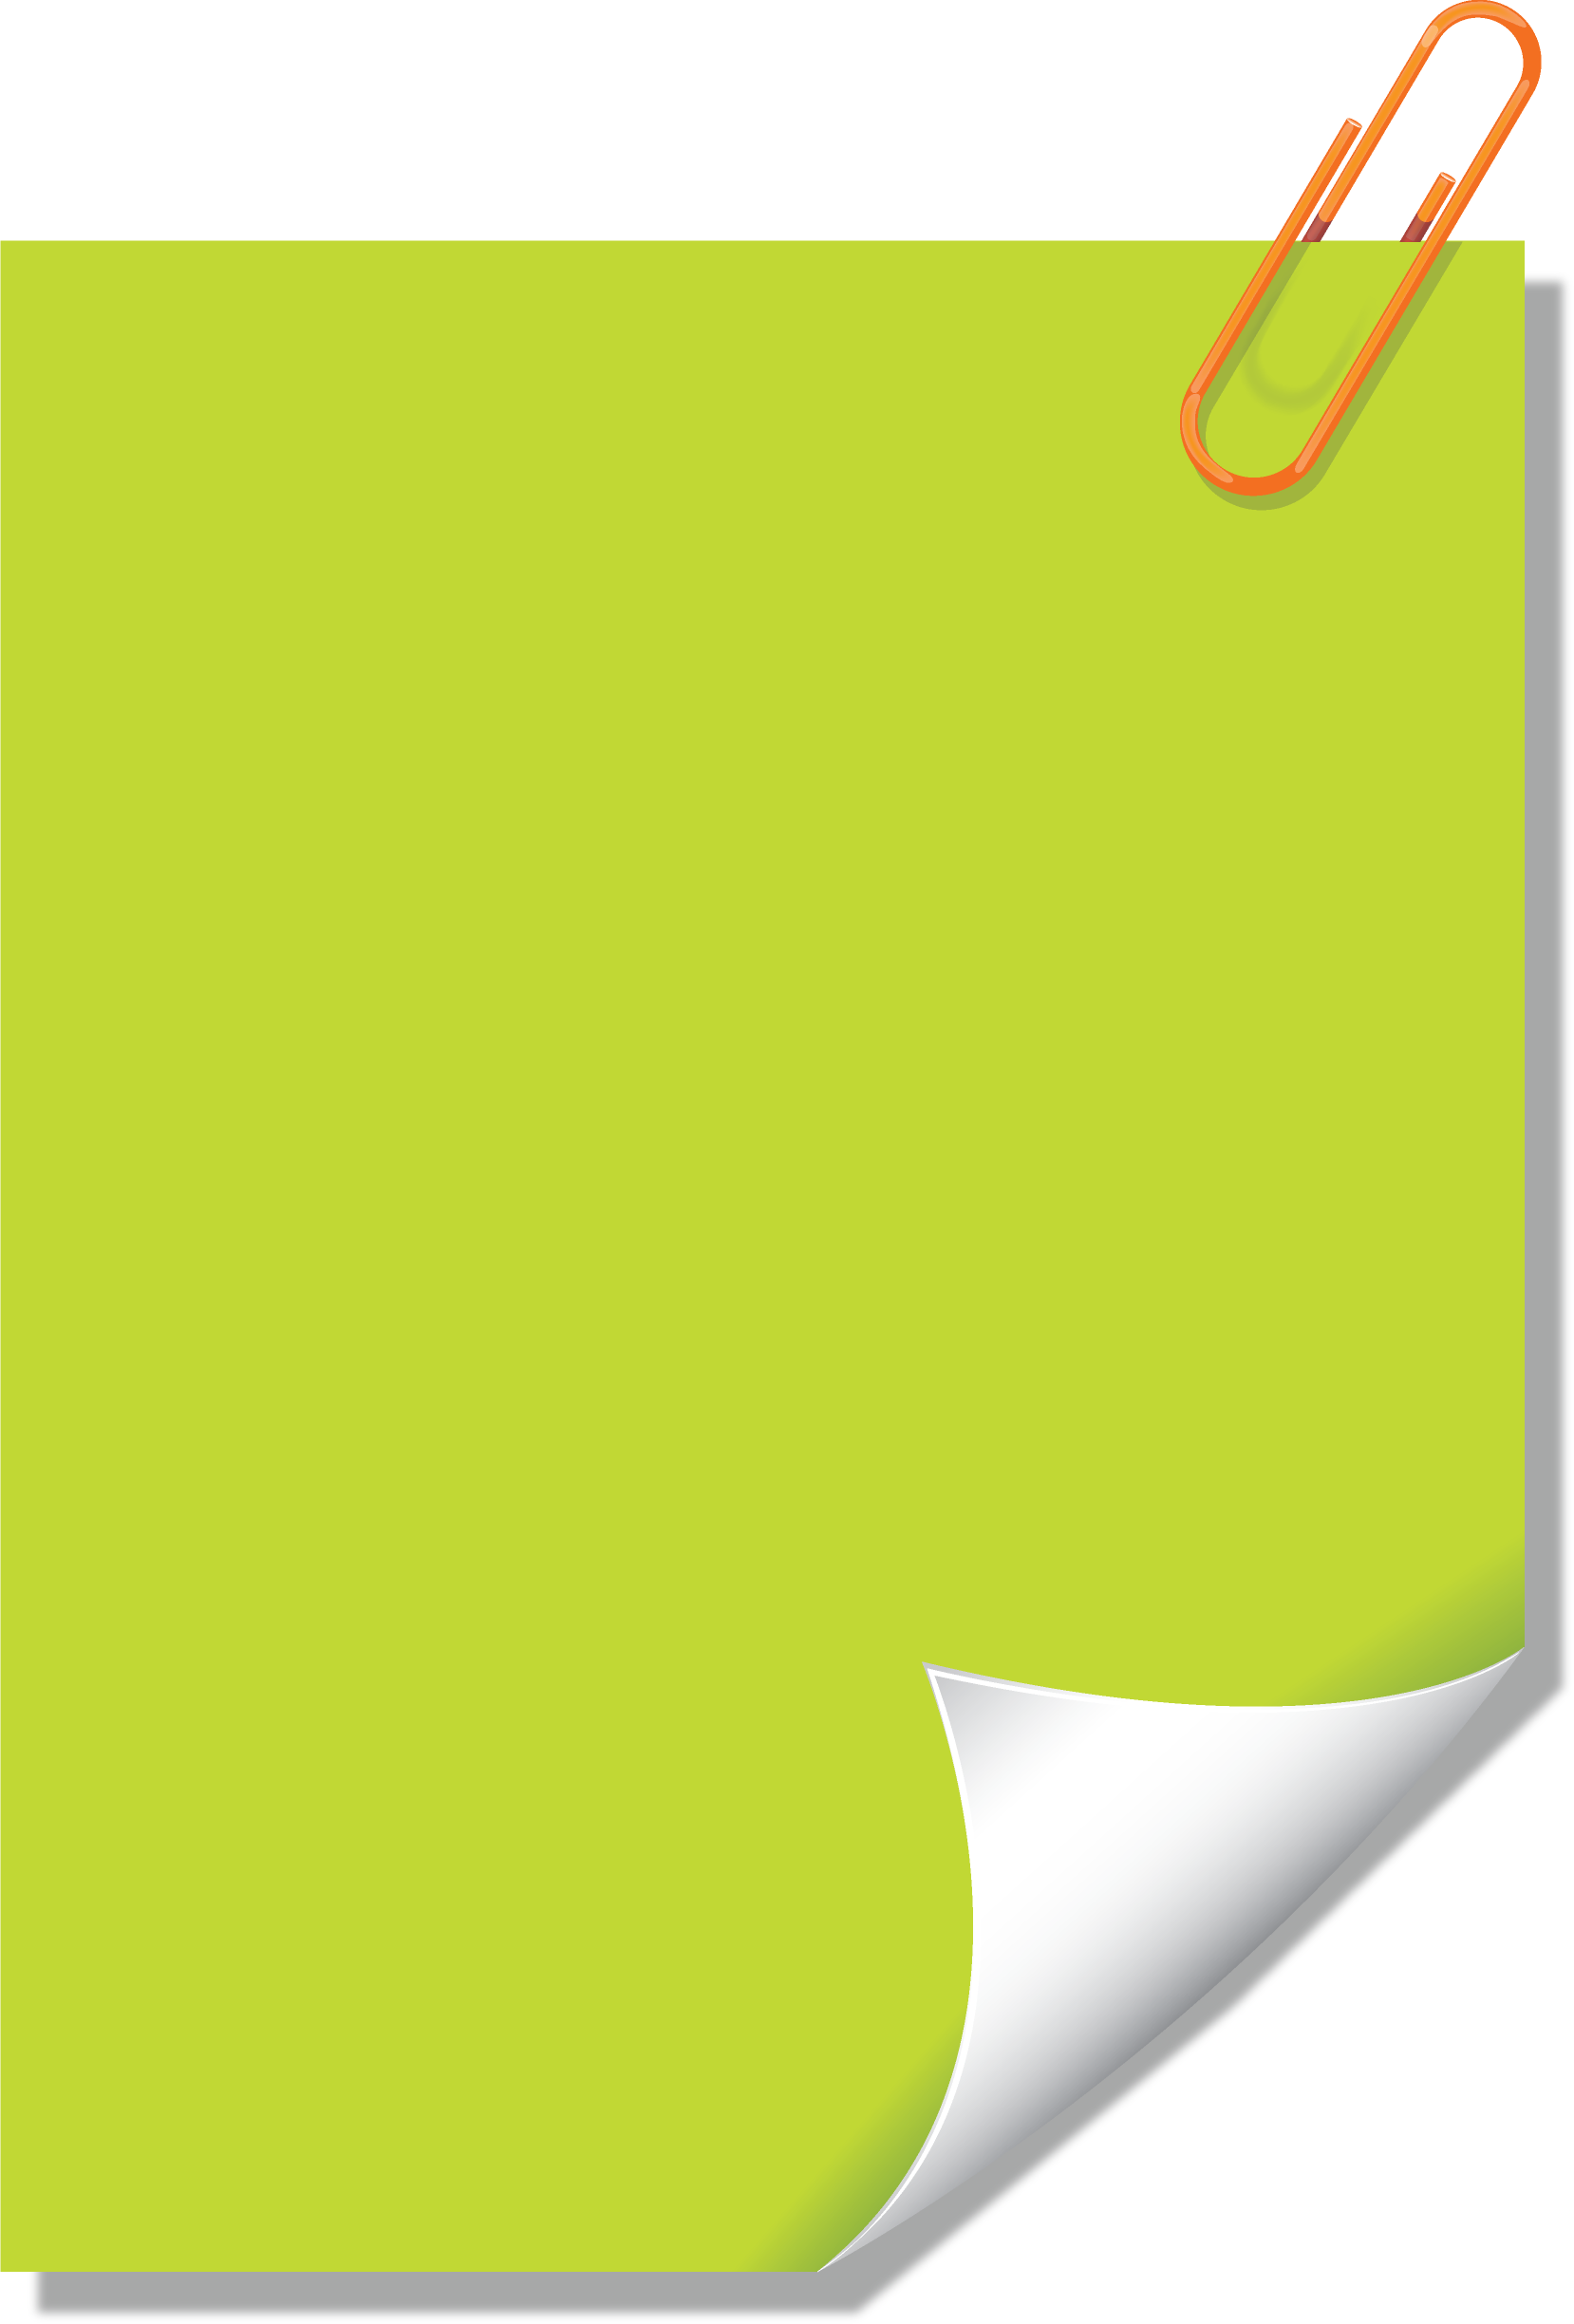 Green Sticky Notes PNG Image - PurePNG | Free transparent ...